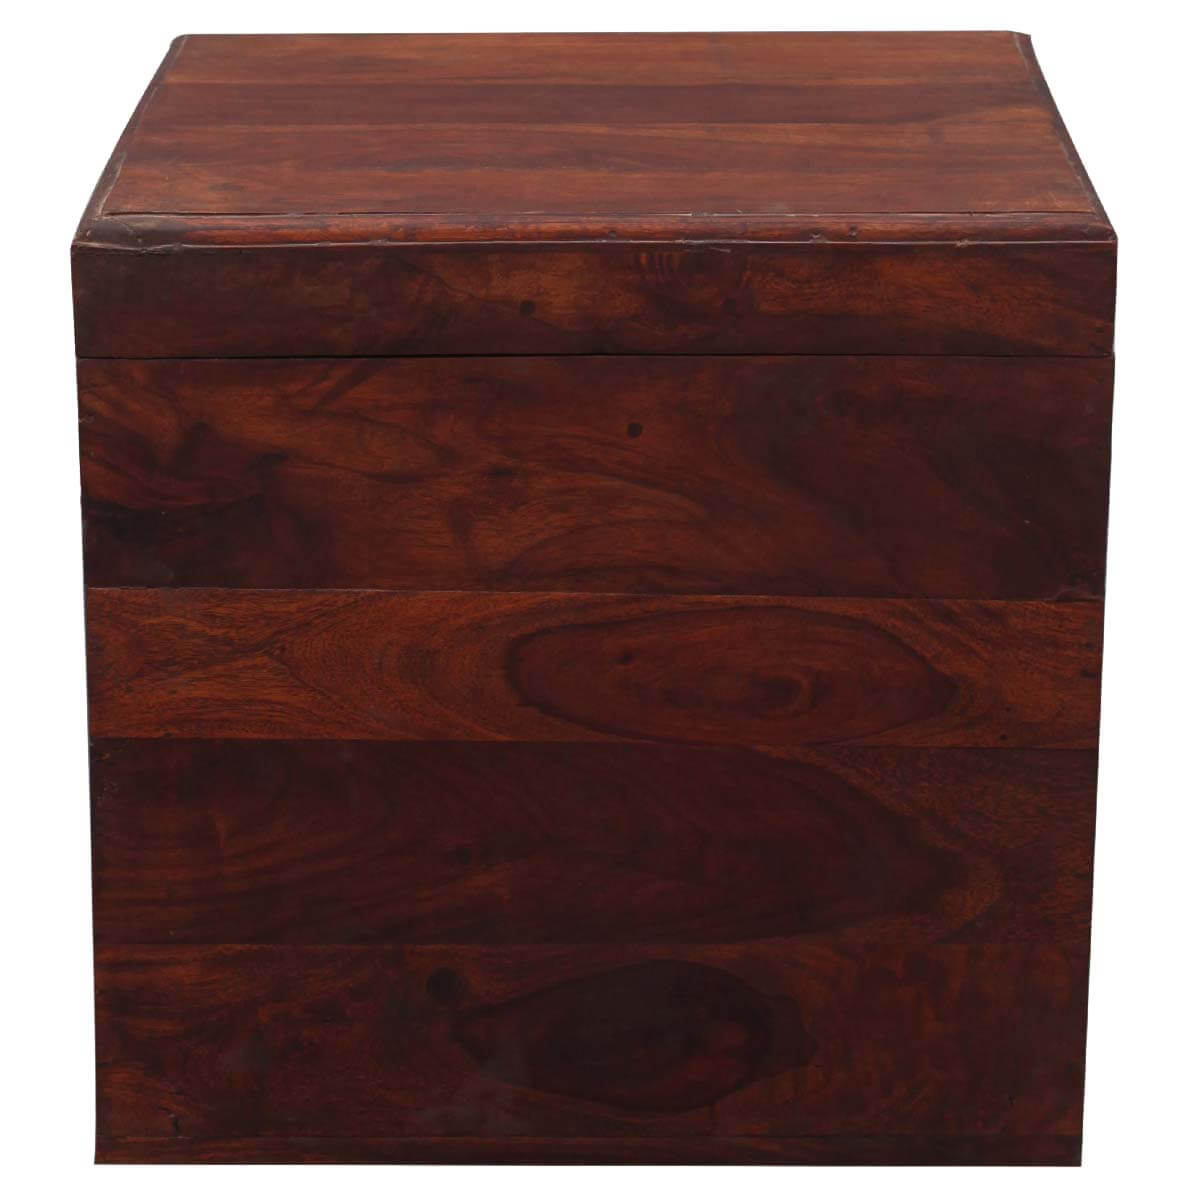 Santa fe 18 cube solid wood storage box end table for Solid wood cube side table